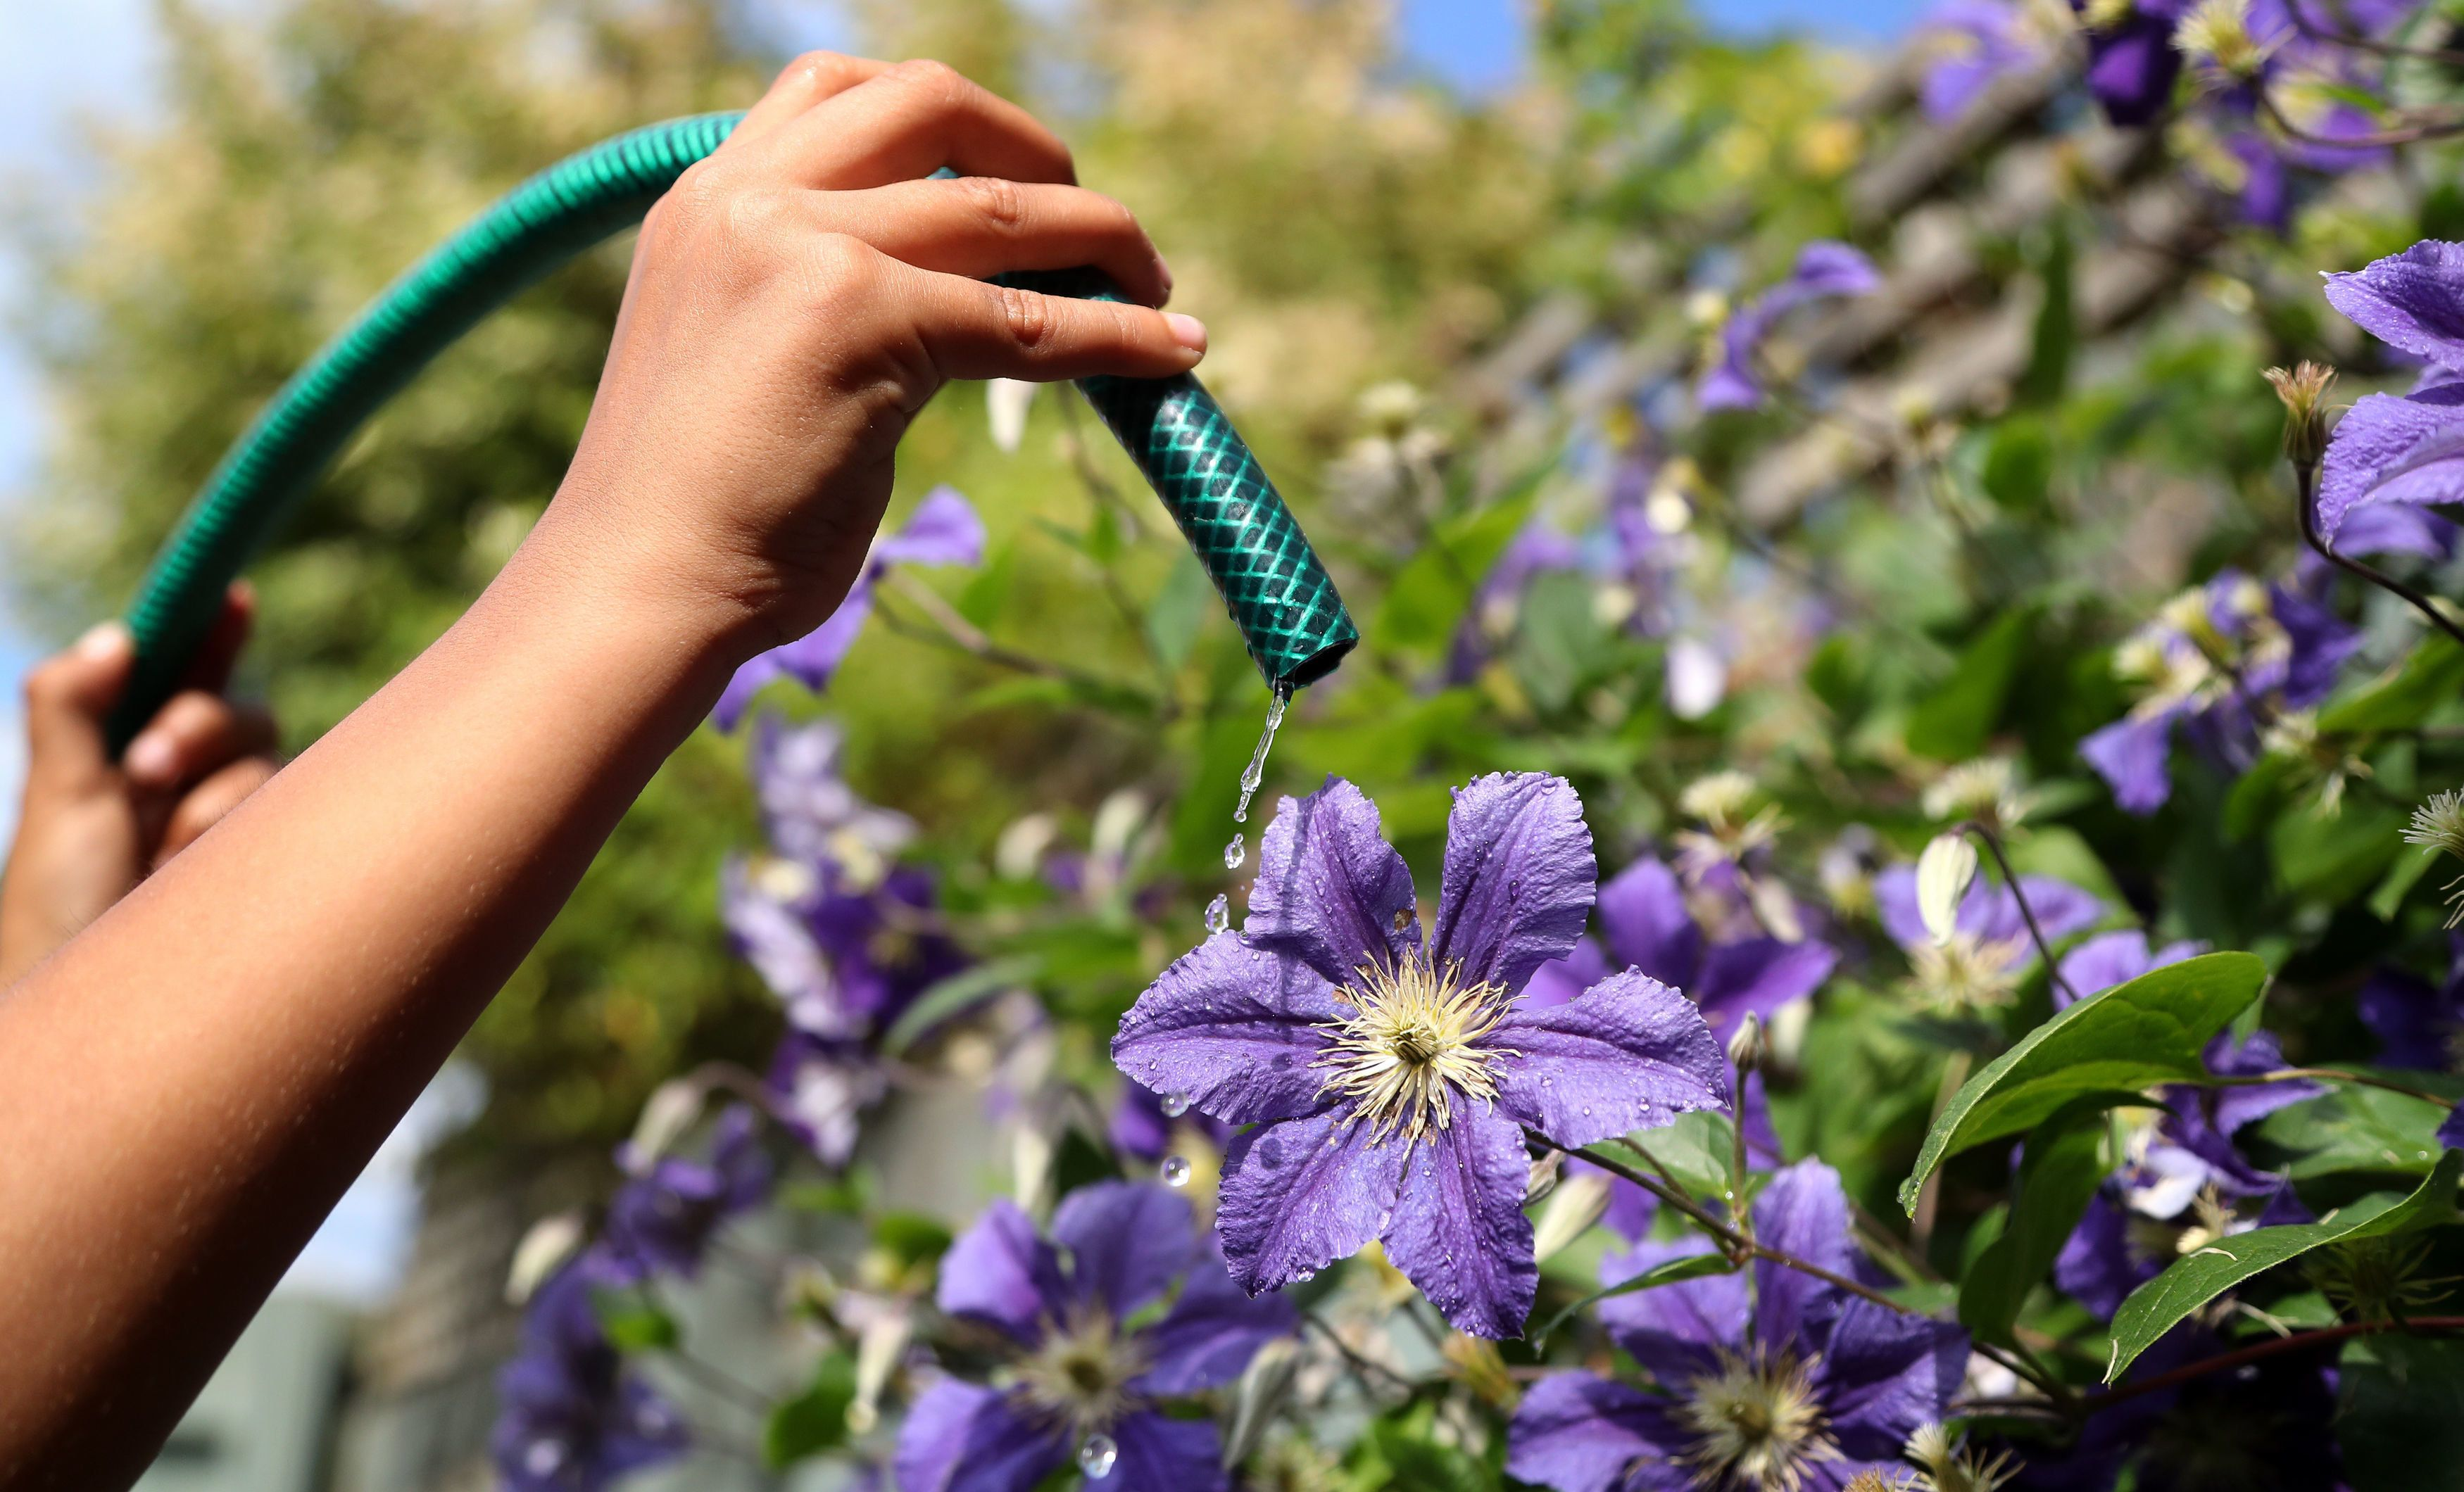 Heatwave Sees First Hosepipe Ban Imposed In England Since